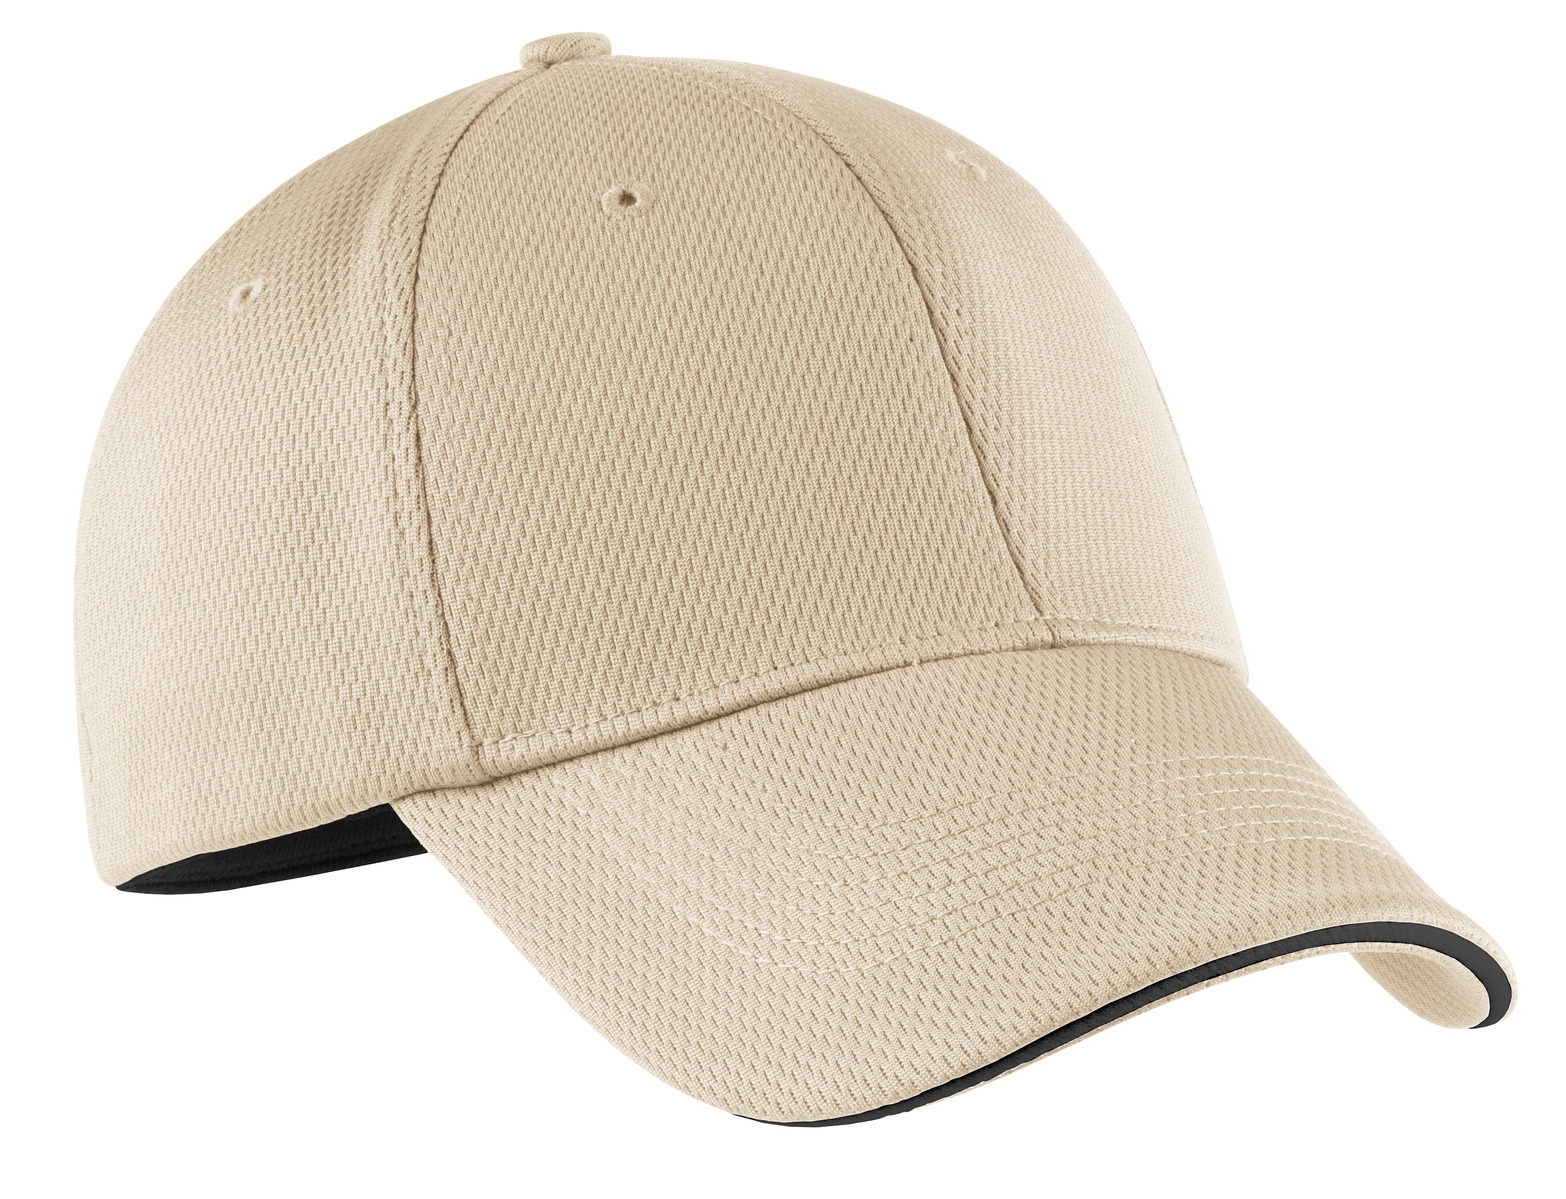 Nike Dri-FIT Mesh Swoosh Flex Sandwich Cap.  333115 - Birch